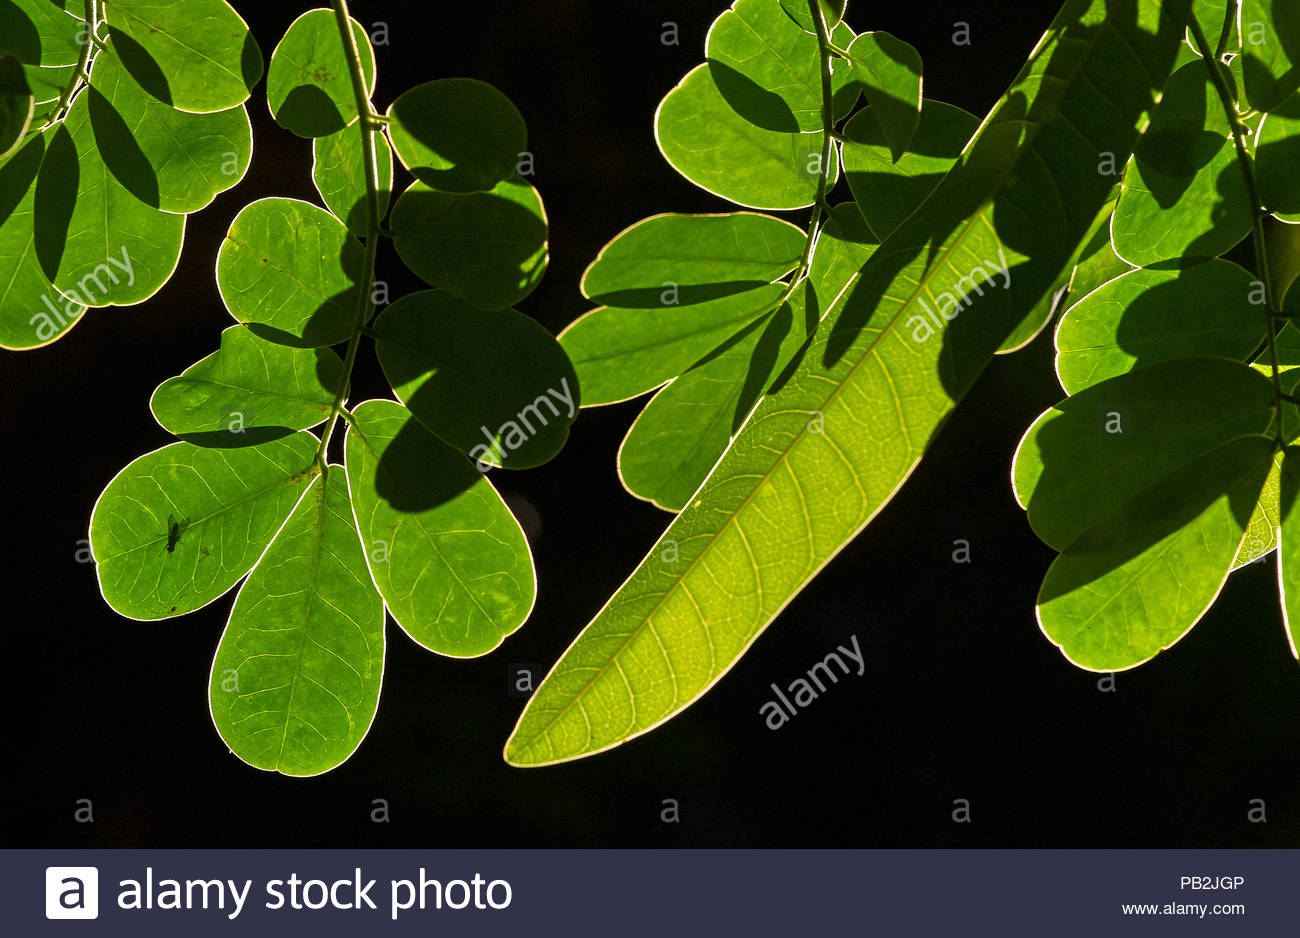 Leaves of the Rainforest Cassia(Senna acclinis), catching Autumn sunshine - the strong backlighting making them translucent; edges and veins aglow. - Stock Image